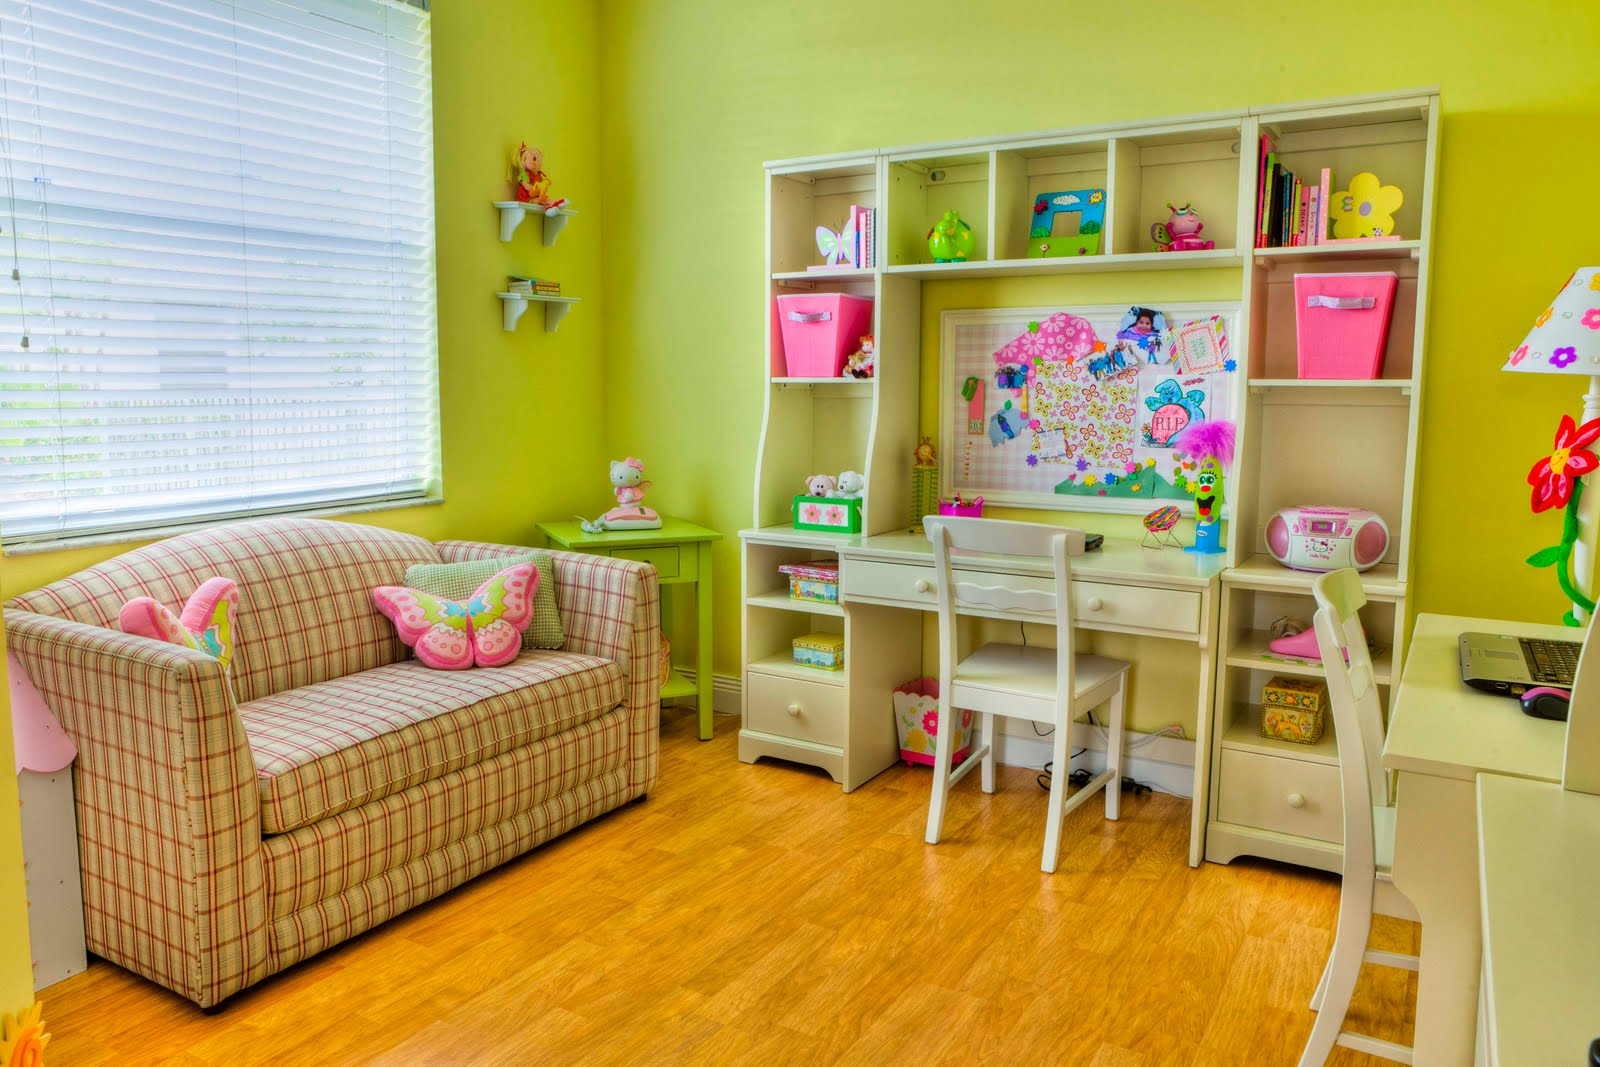 Intramuros Design Children 39 S Room Design: best color for kids room